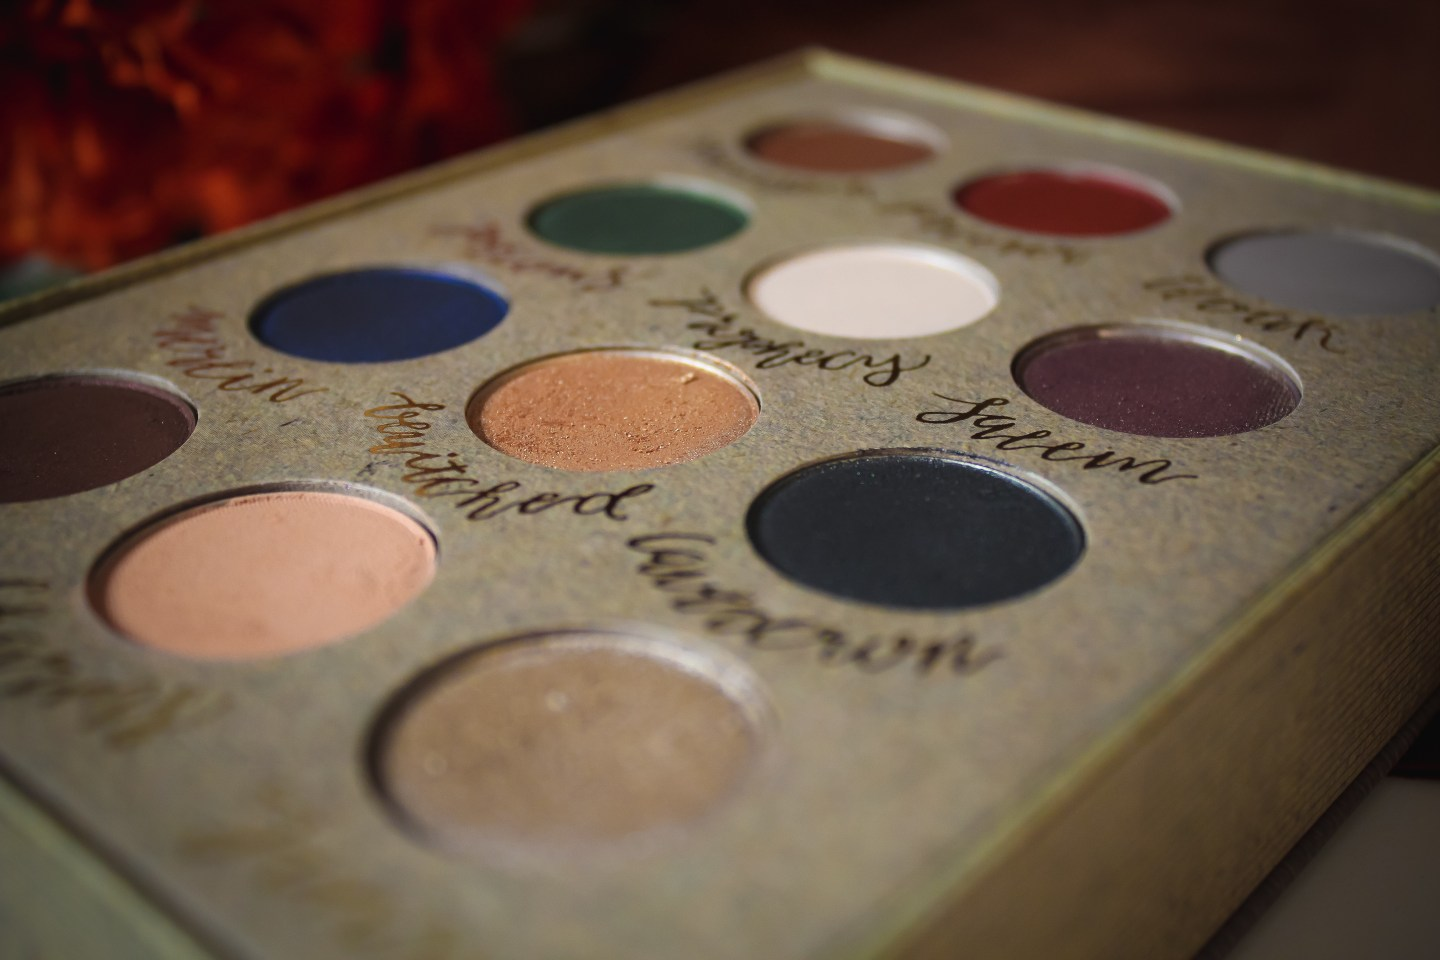 Storybook Cosmetics Wizardry and Witchcraft Palette 5.jpg